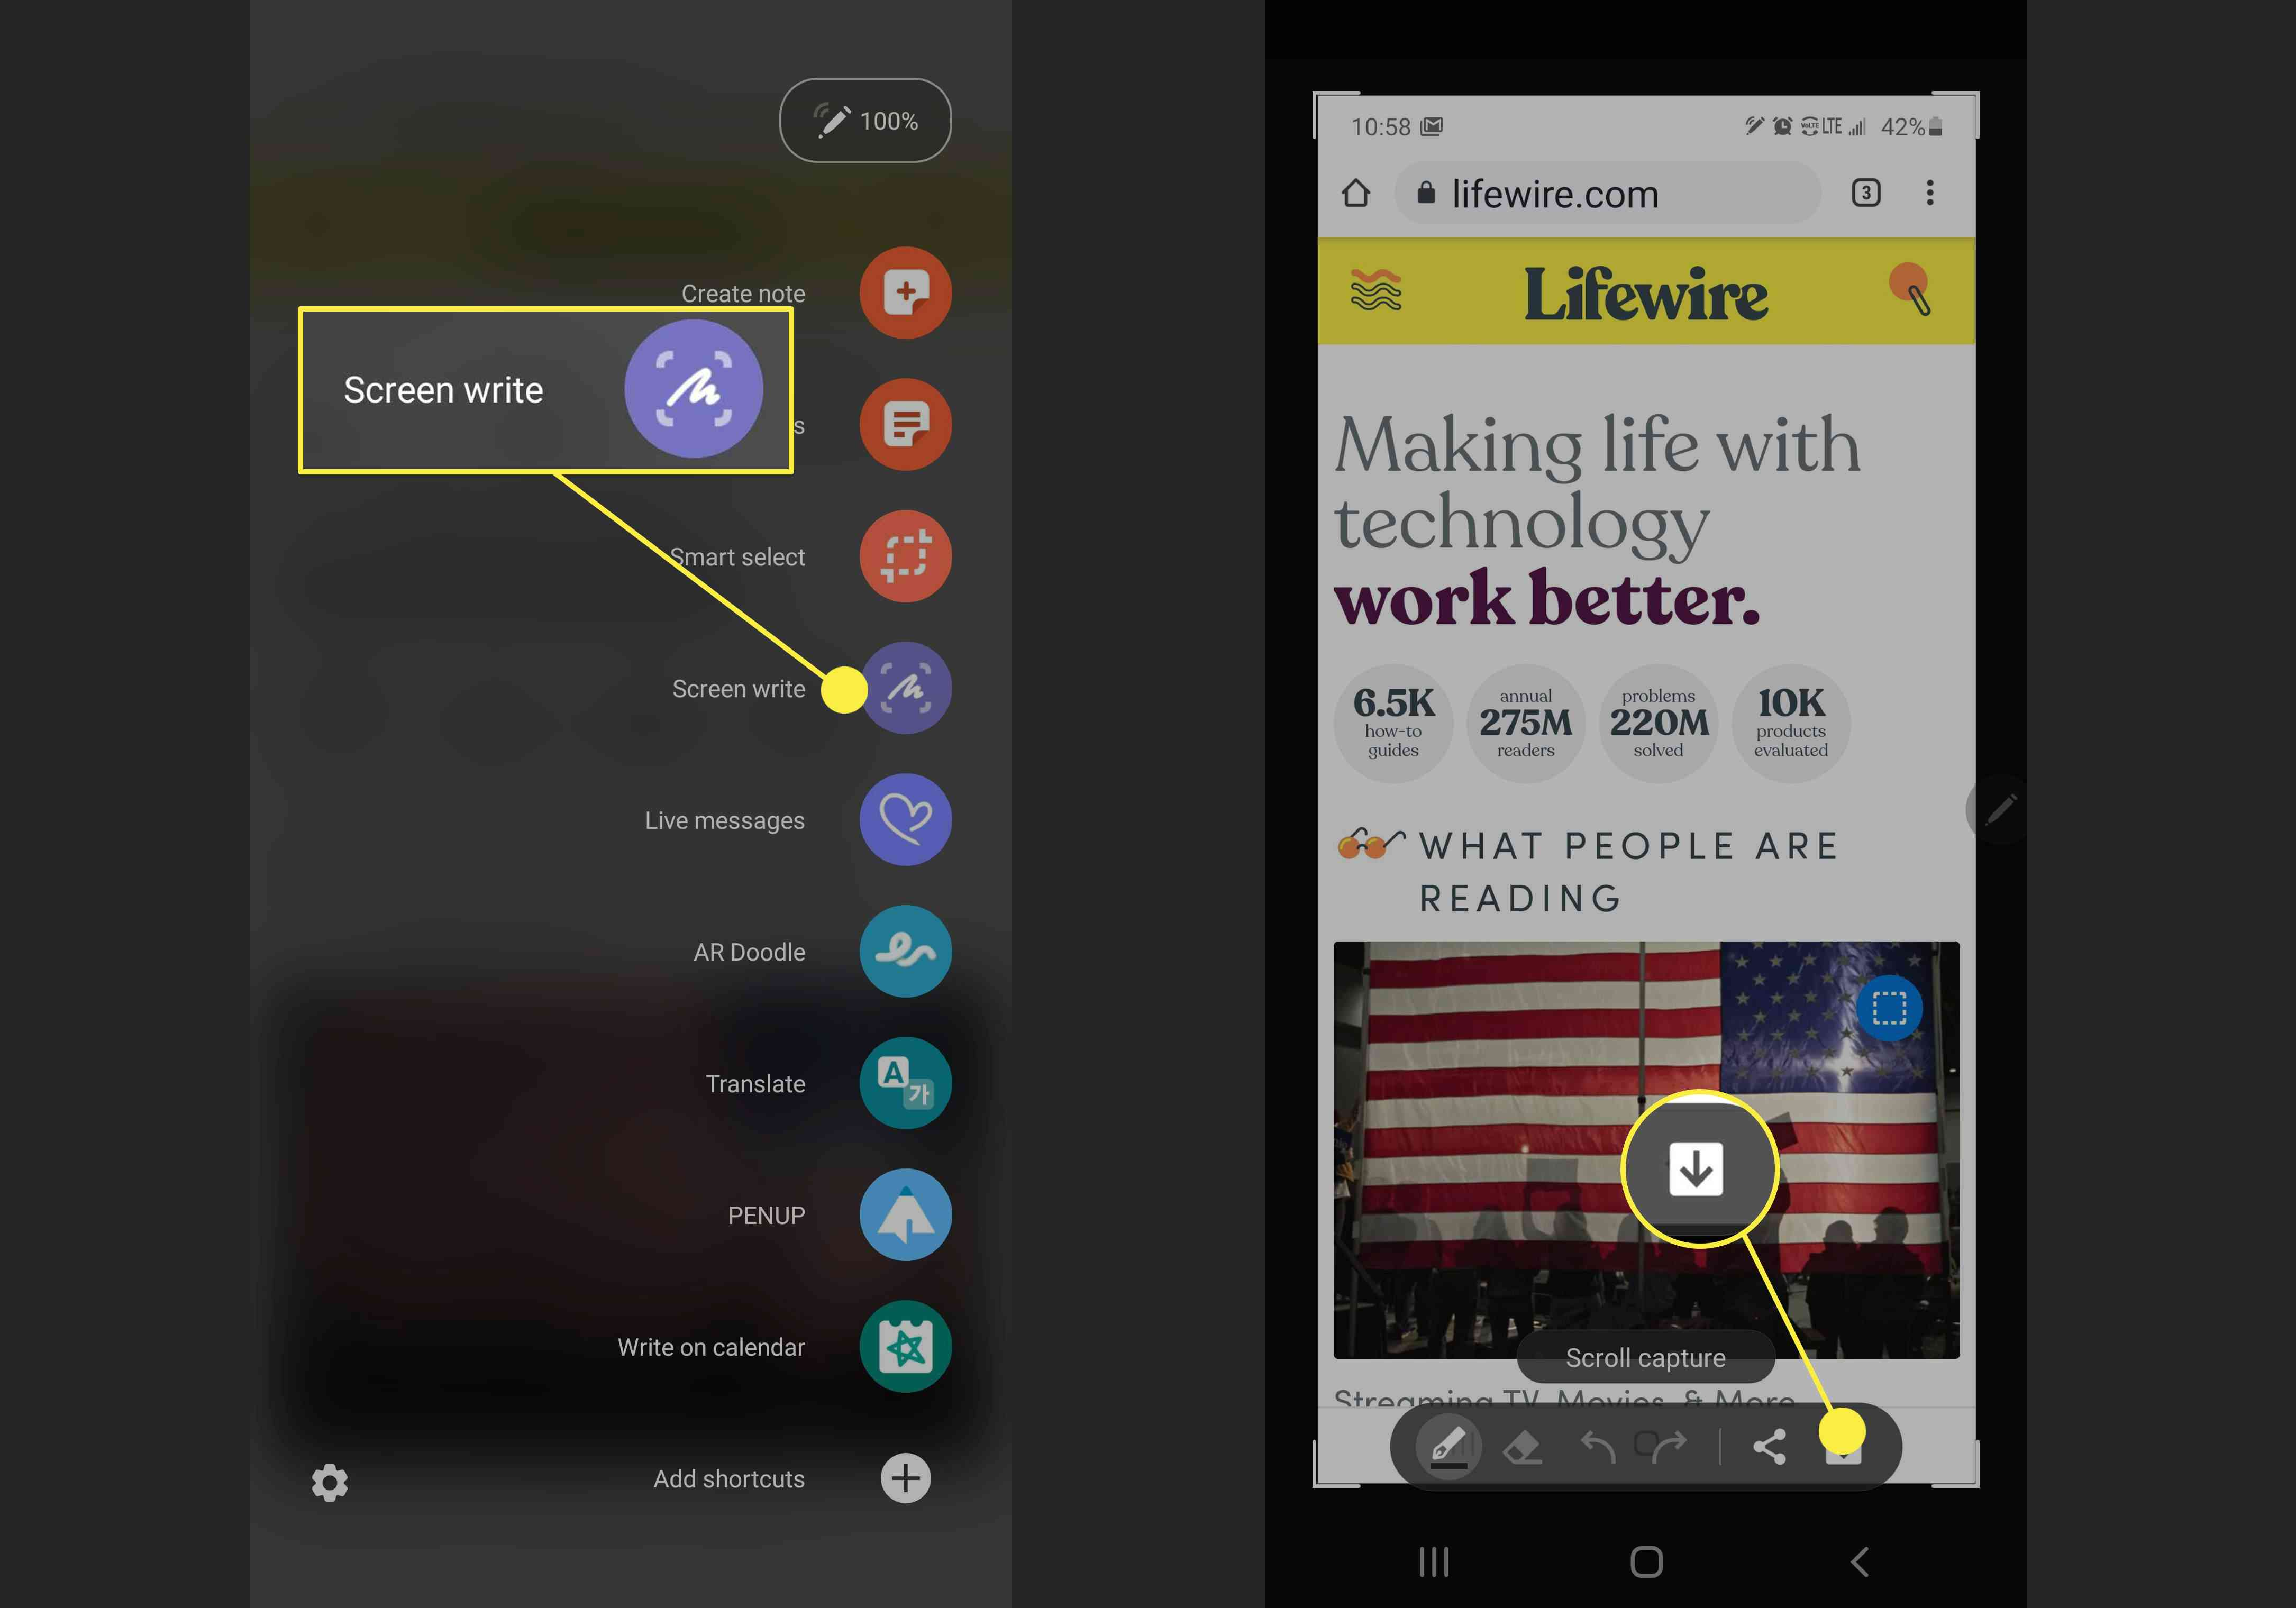 Screenshots showing how to use Screen write to take a screenshot on Galaxy Note 10 and 10+